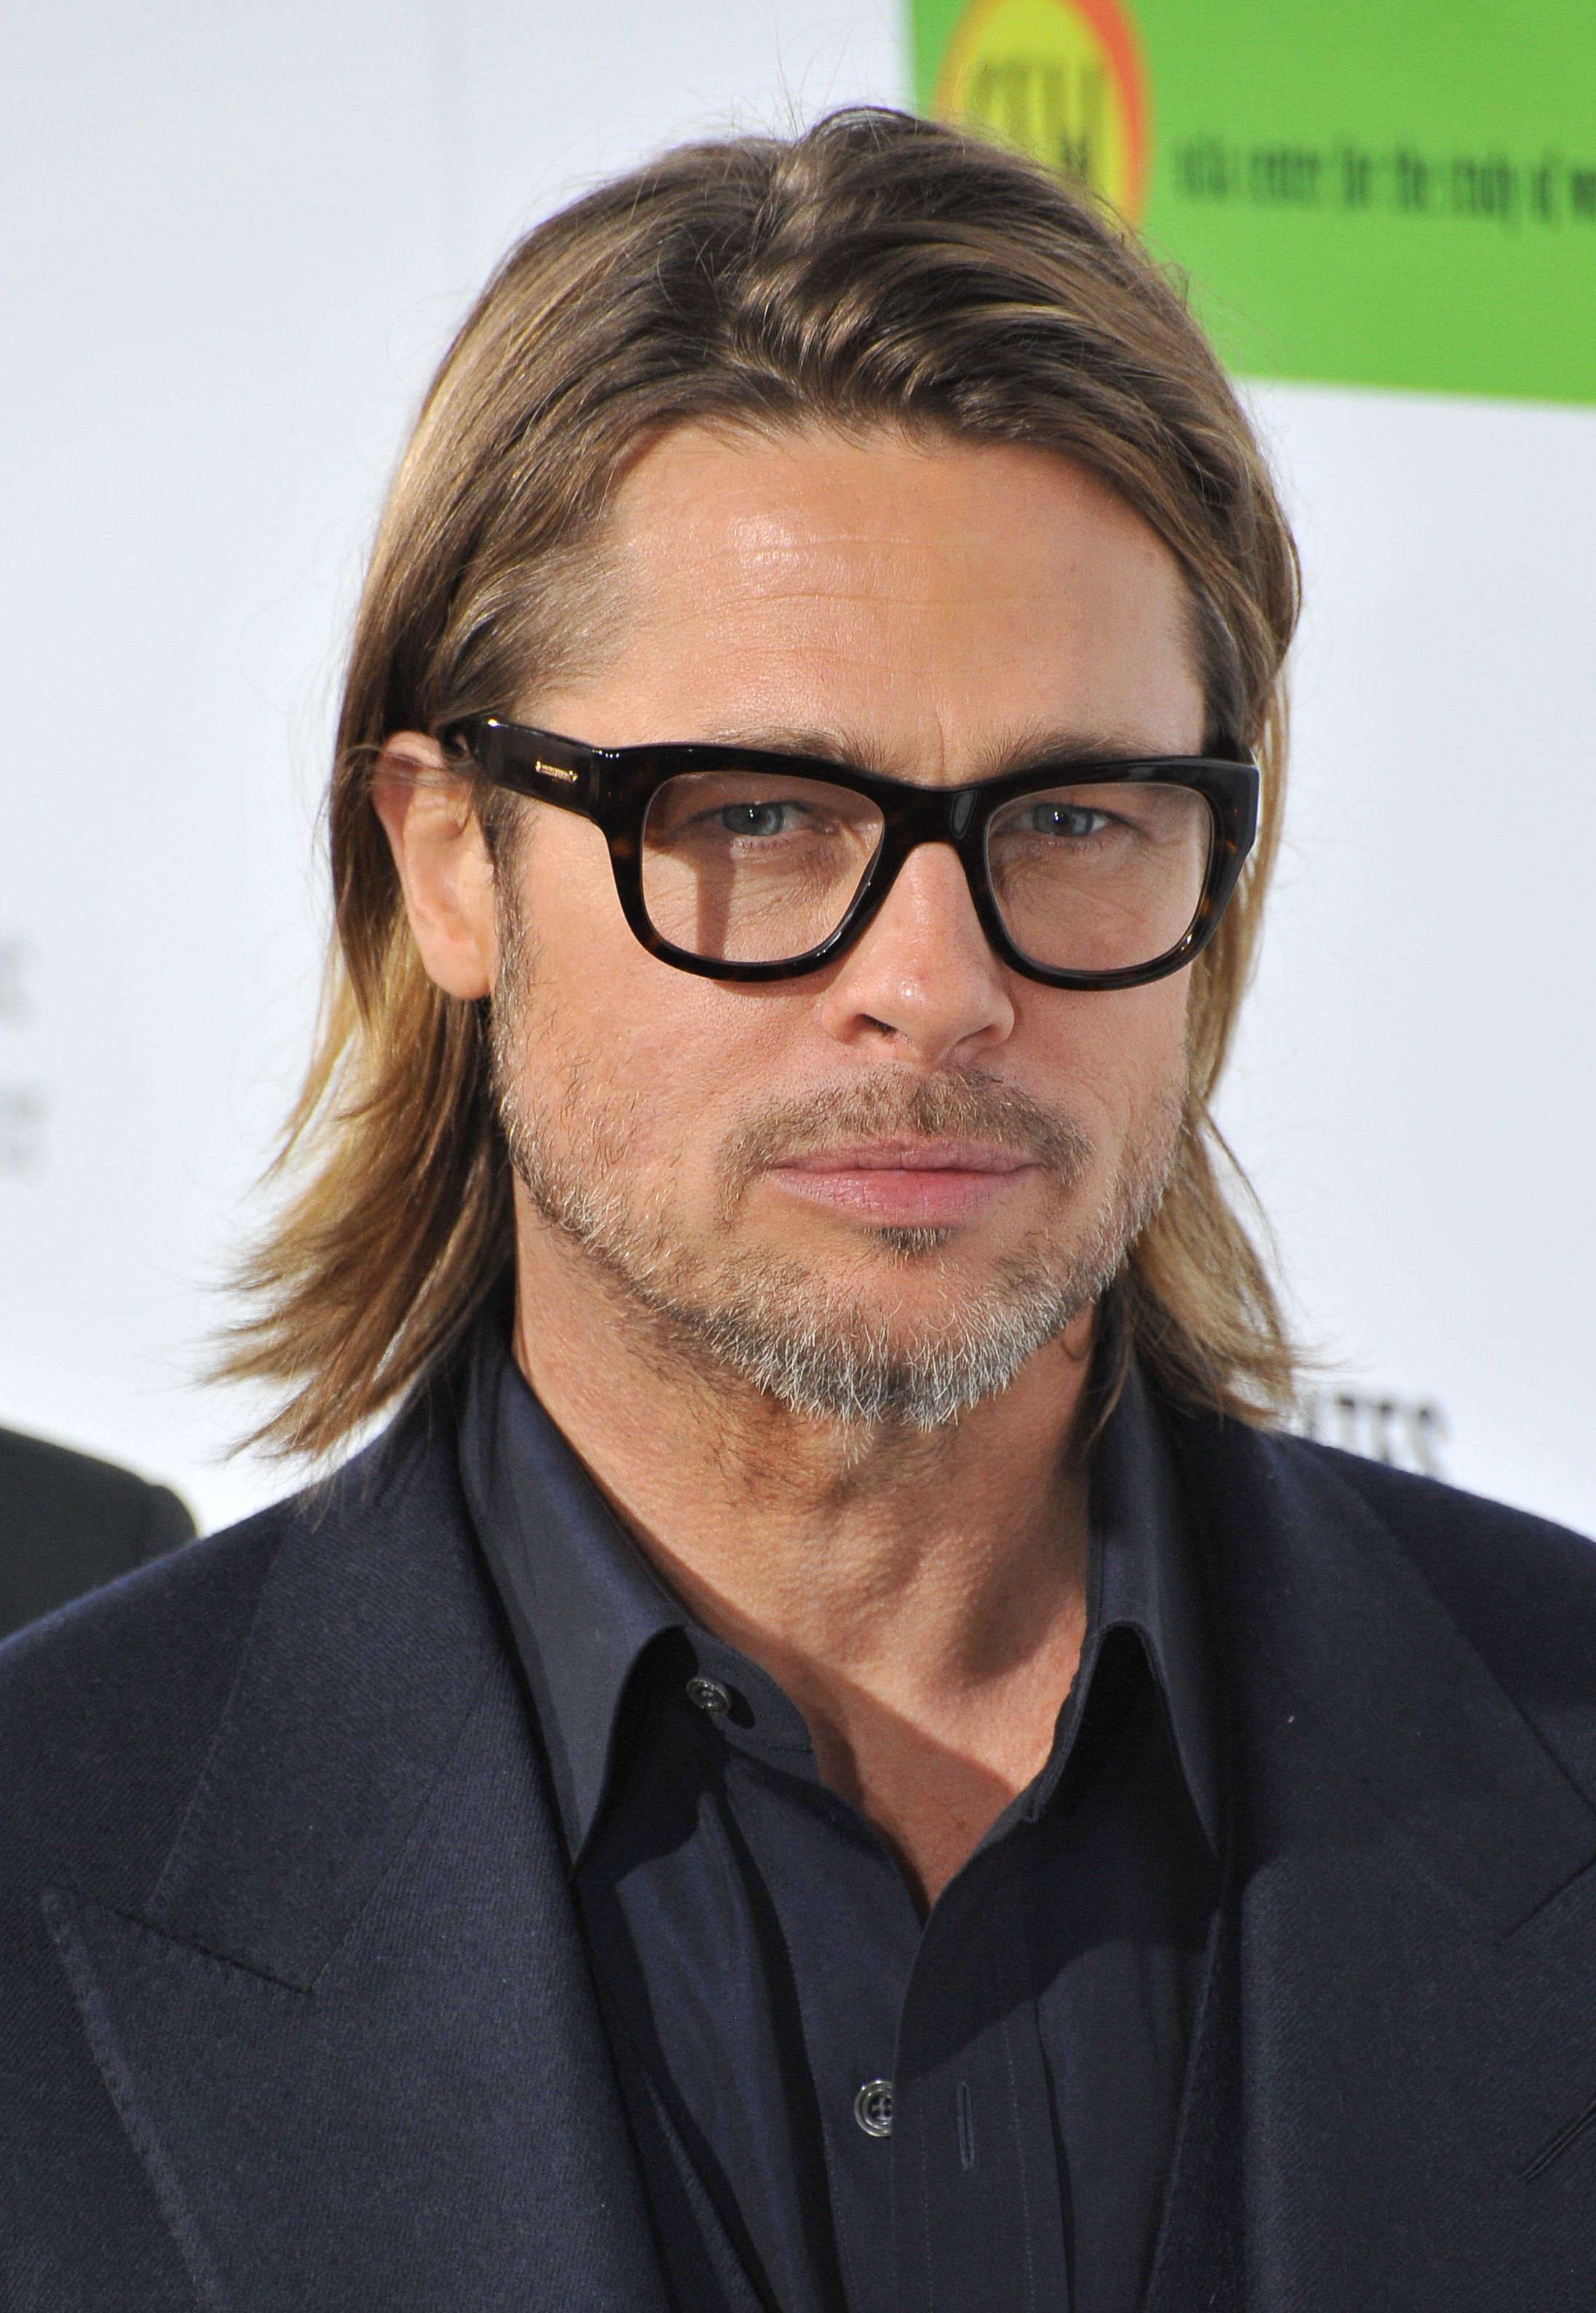 The Ear Tuck Haircut A Suave Style For Modern Day Gentlemen Haircut Inspiration Brad Pitt Long Hair Brad Pitt Hair Gentleman Haircut